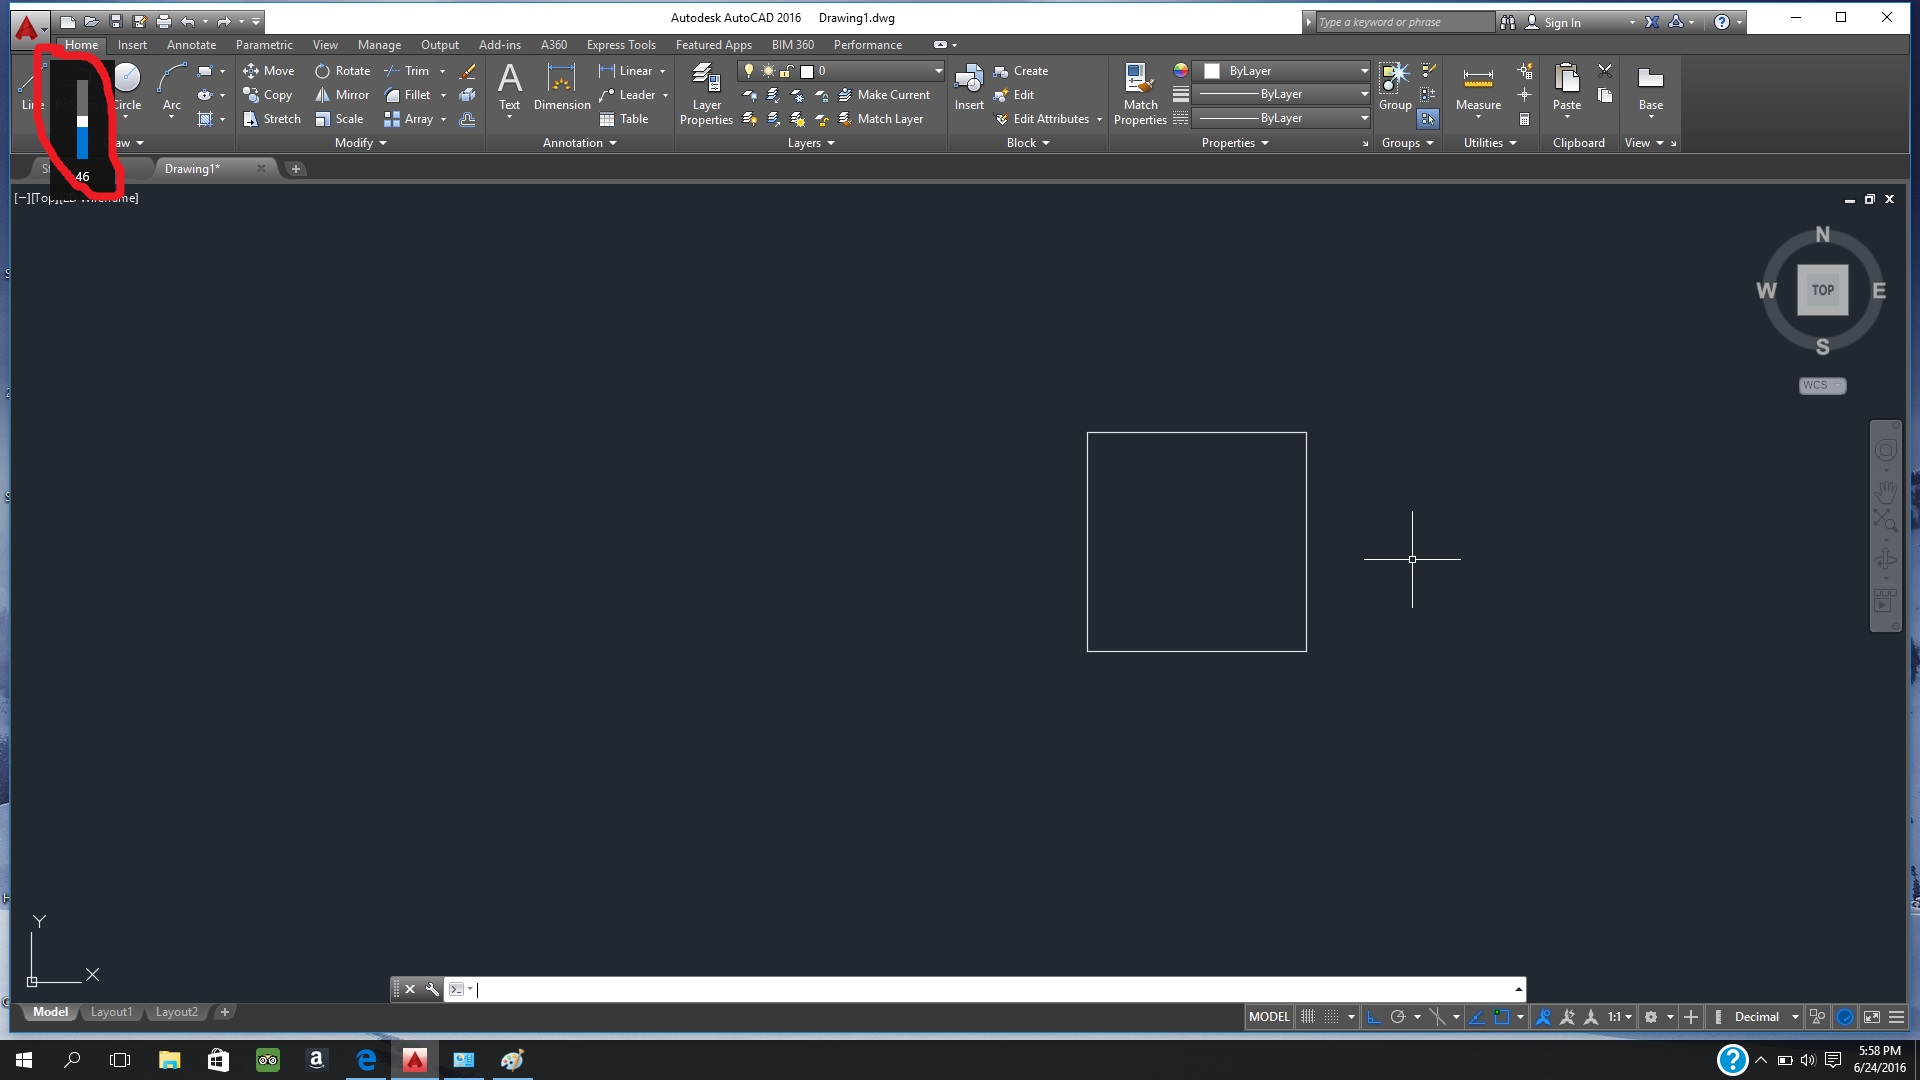 function key not working in autocad 2016 - Autodesk Community